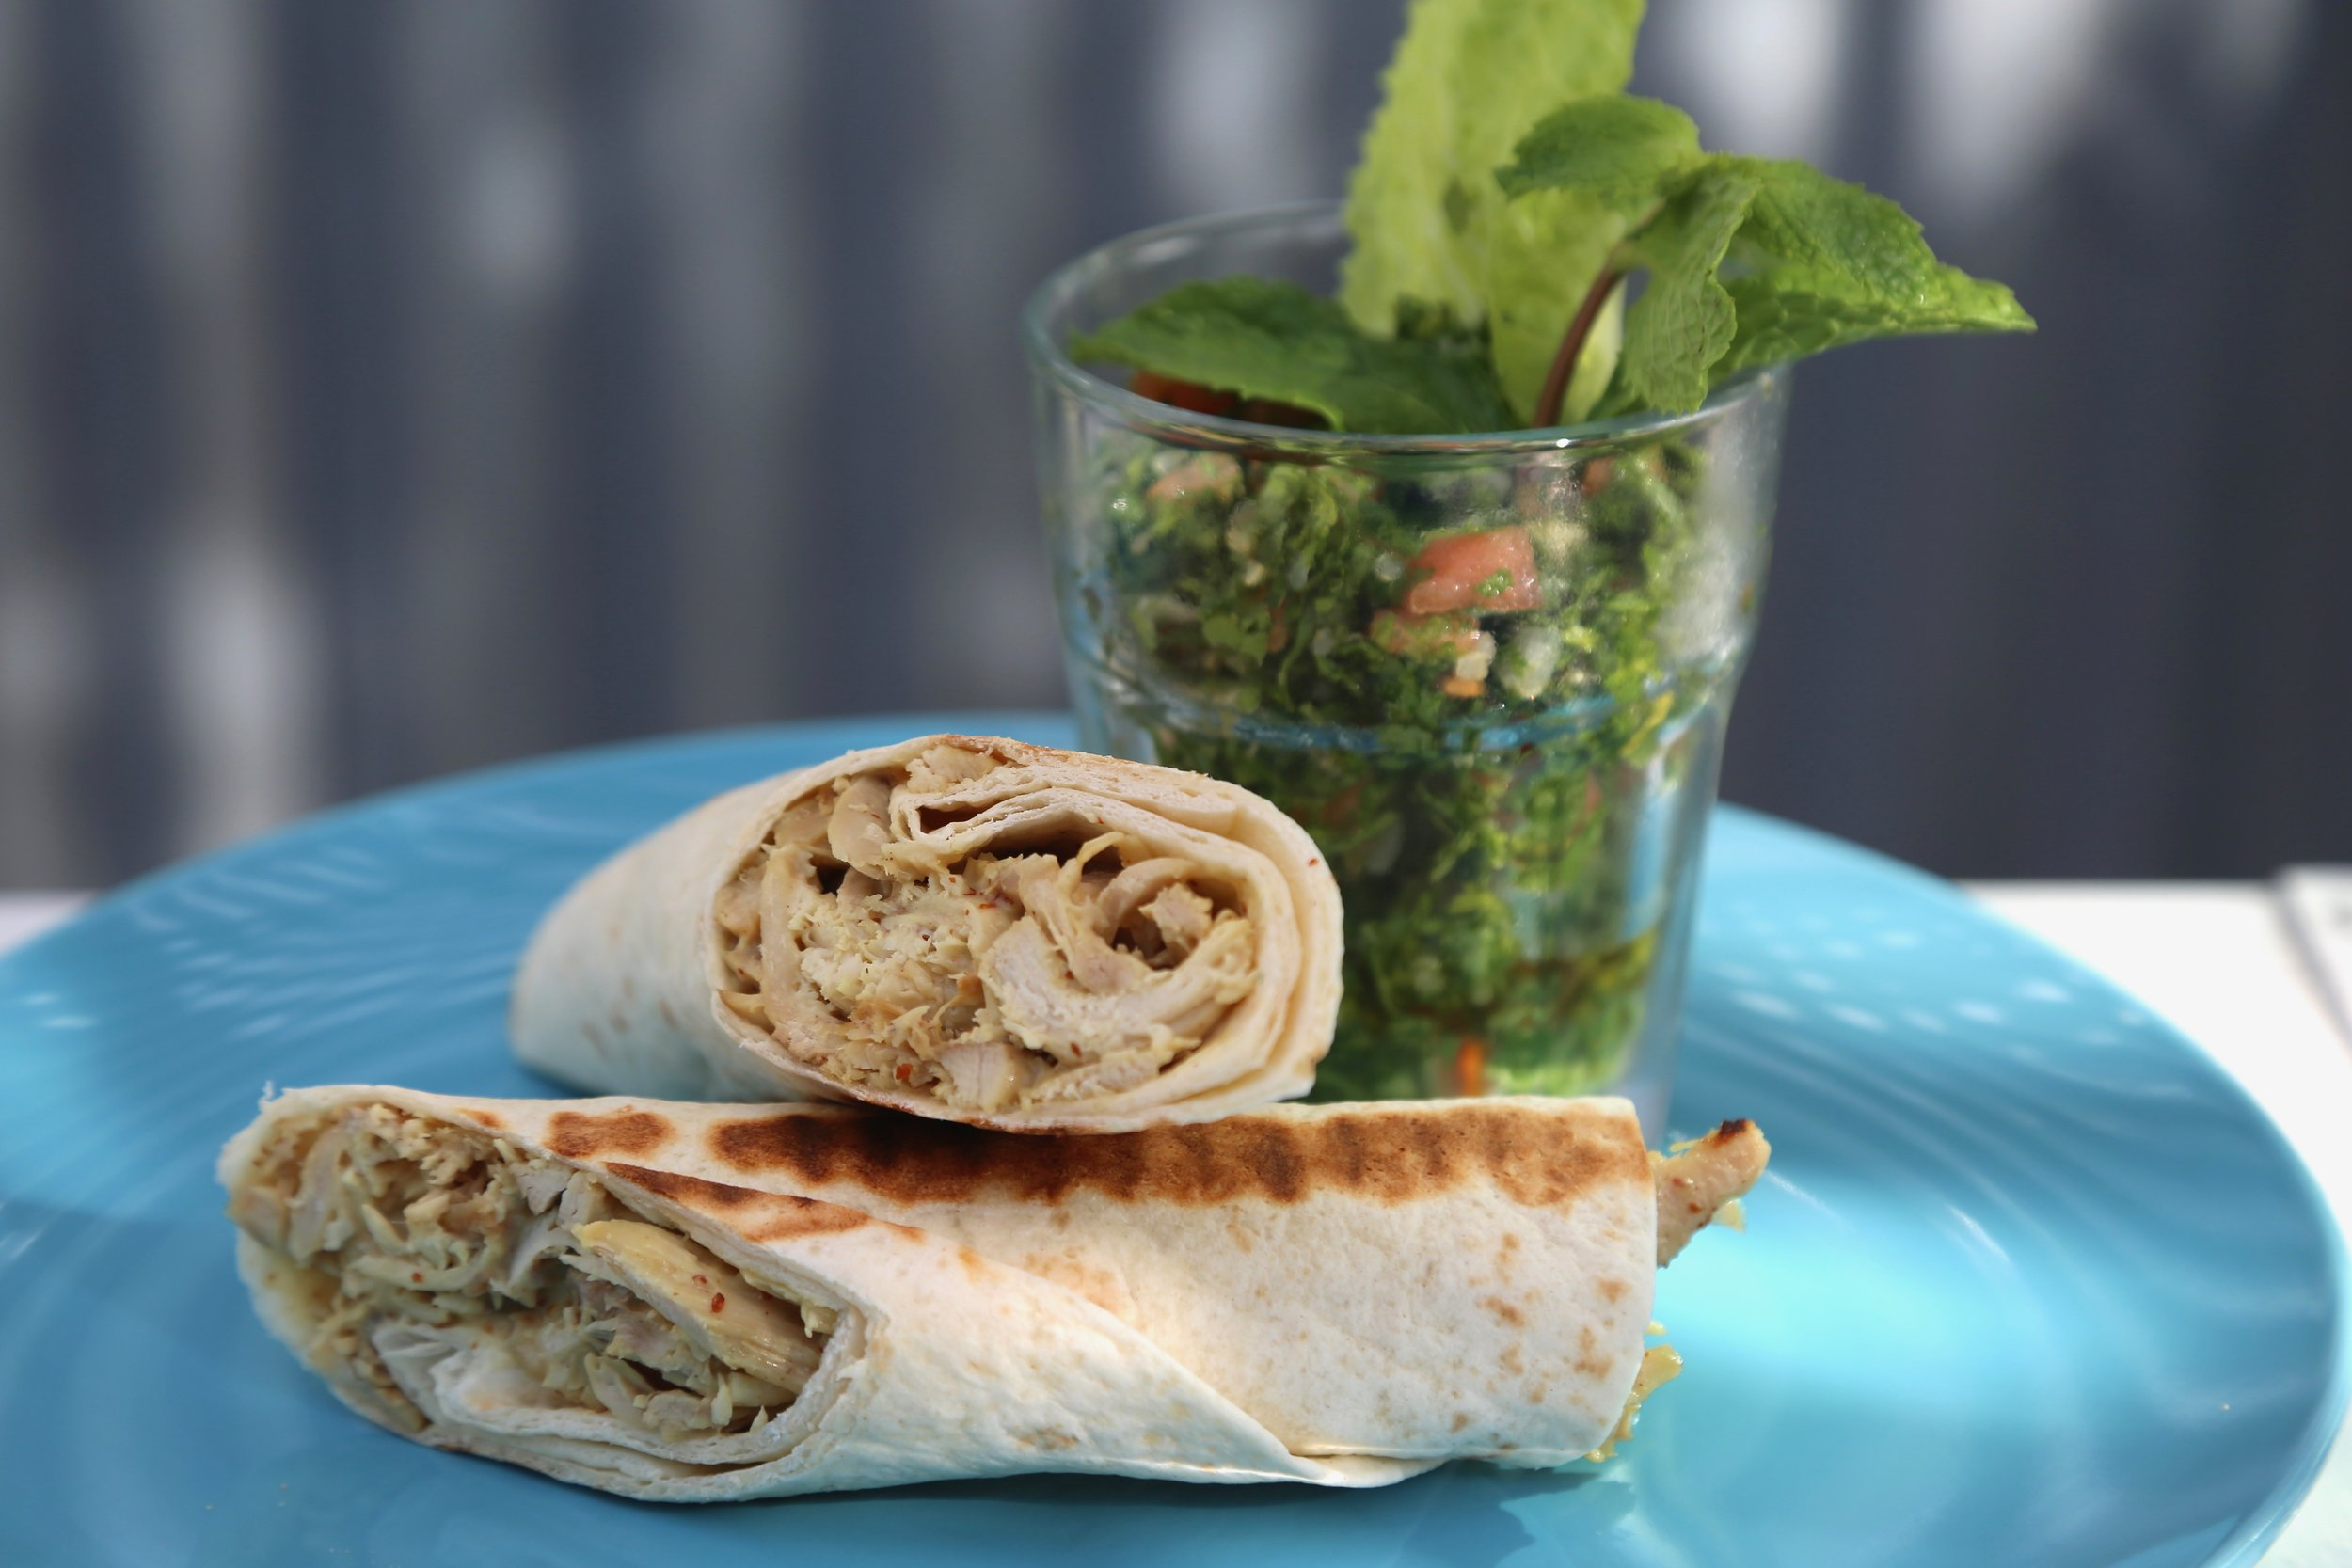 Chicken Wrap: Barbecued chicken in yogurt sauce flavoured with mango chutney and mustard, tomato, cucumber, lettuce and served with tabbouleh salad